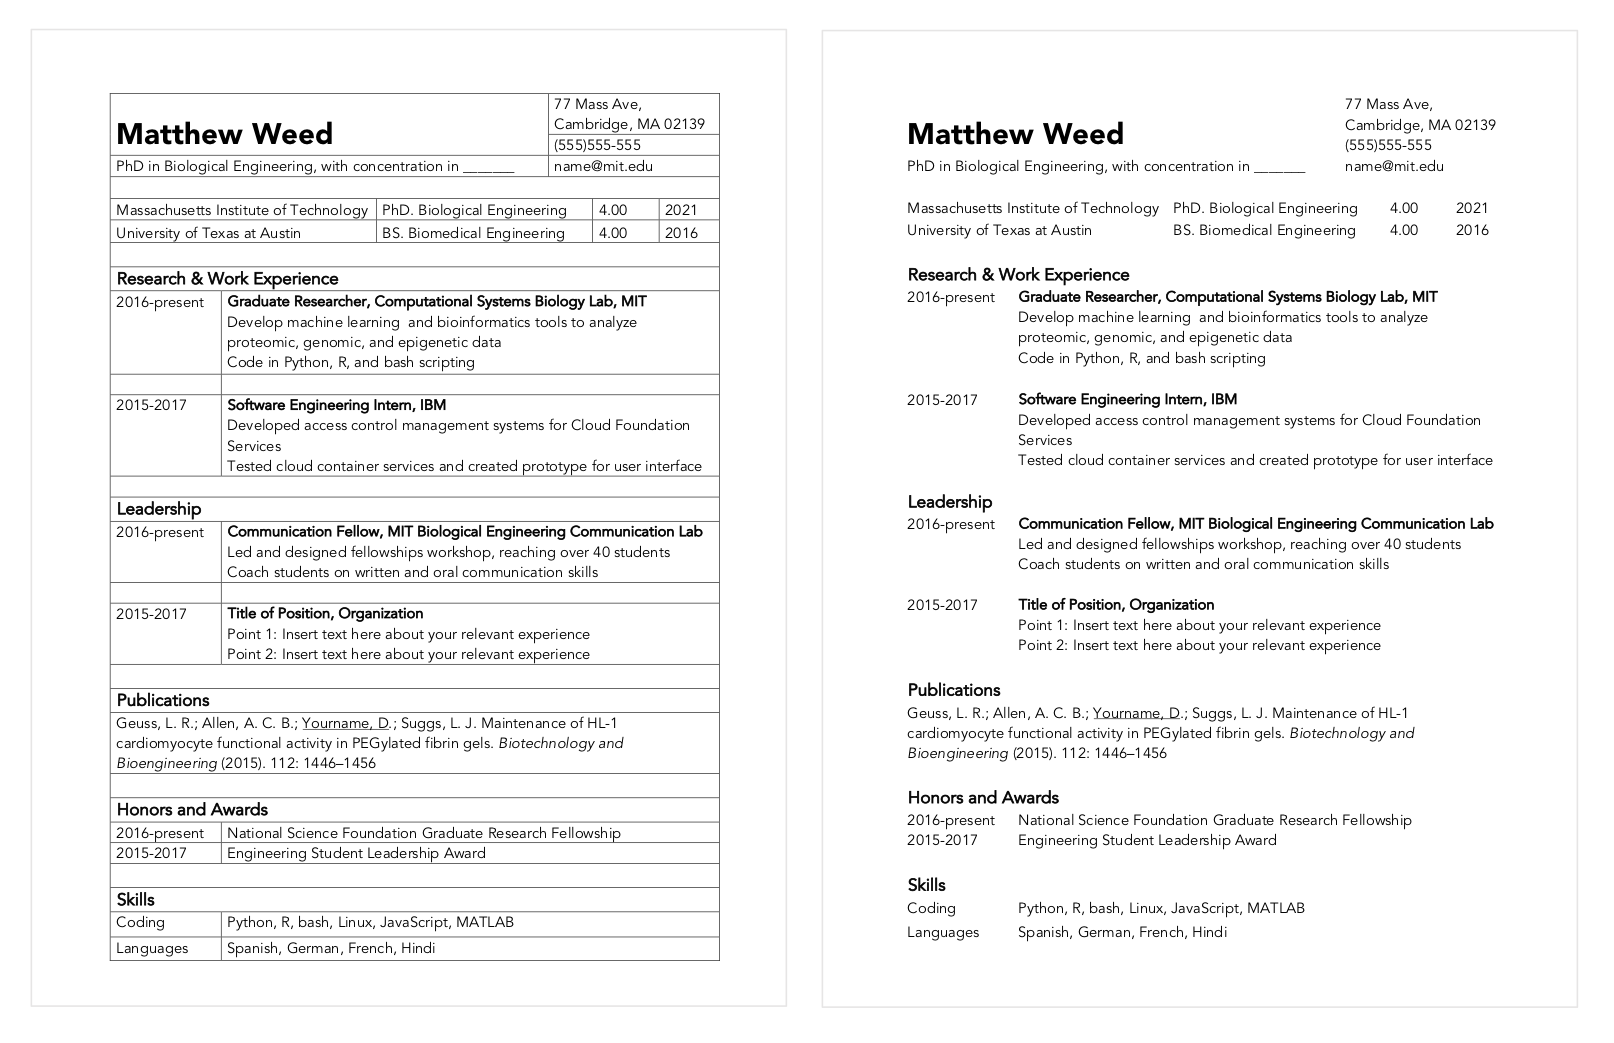 Resumes And Cvs In Word Excel And Latex Cv Resources